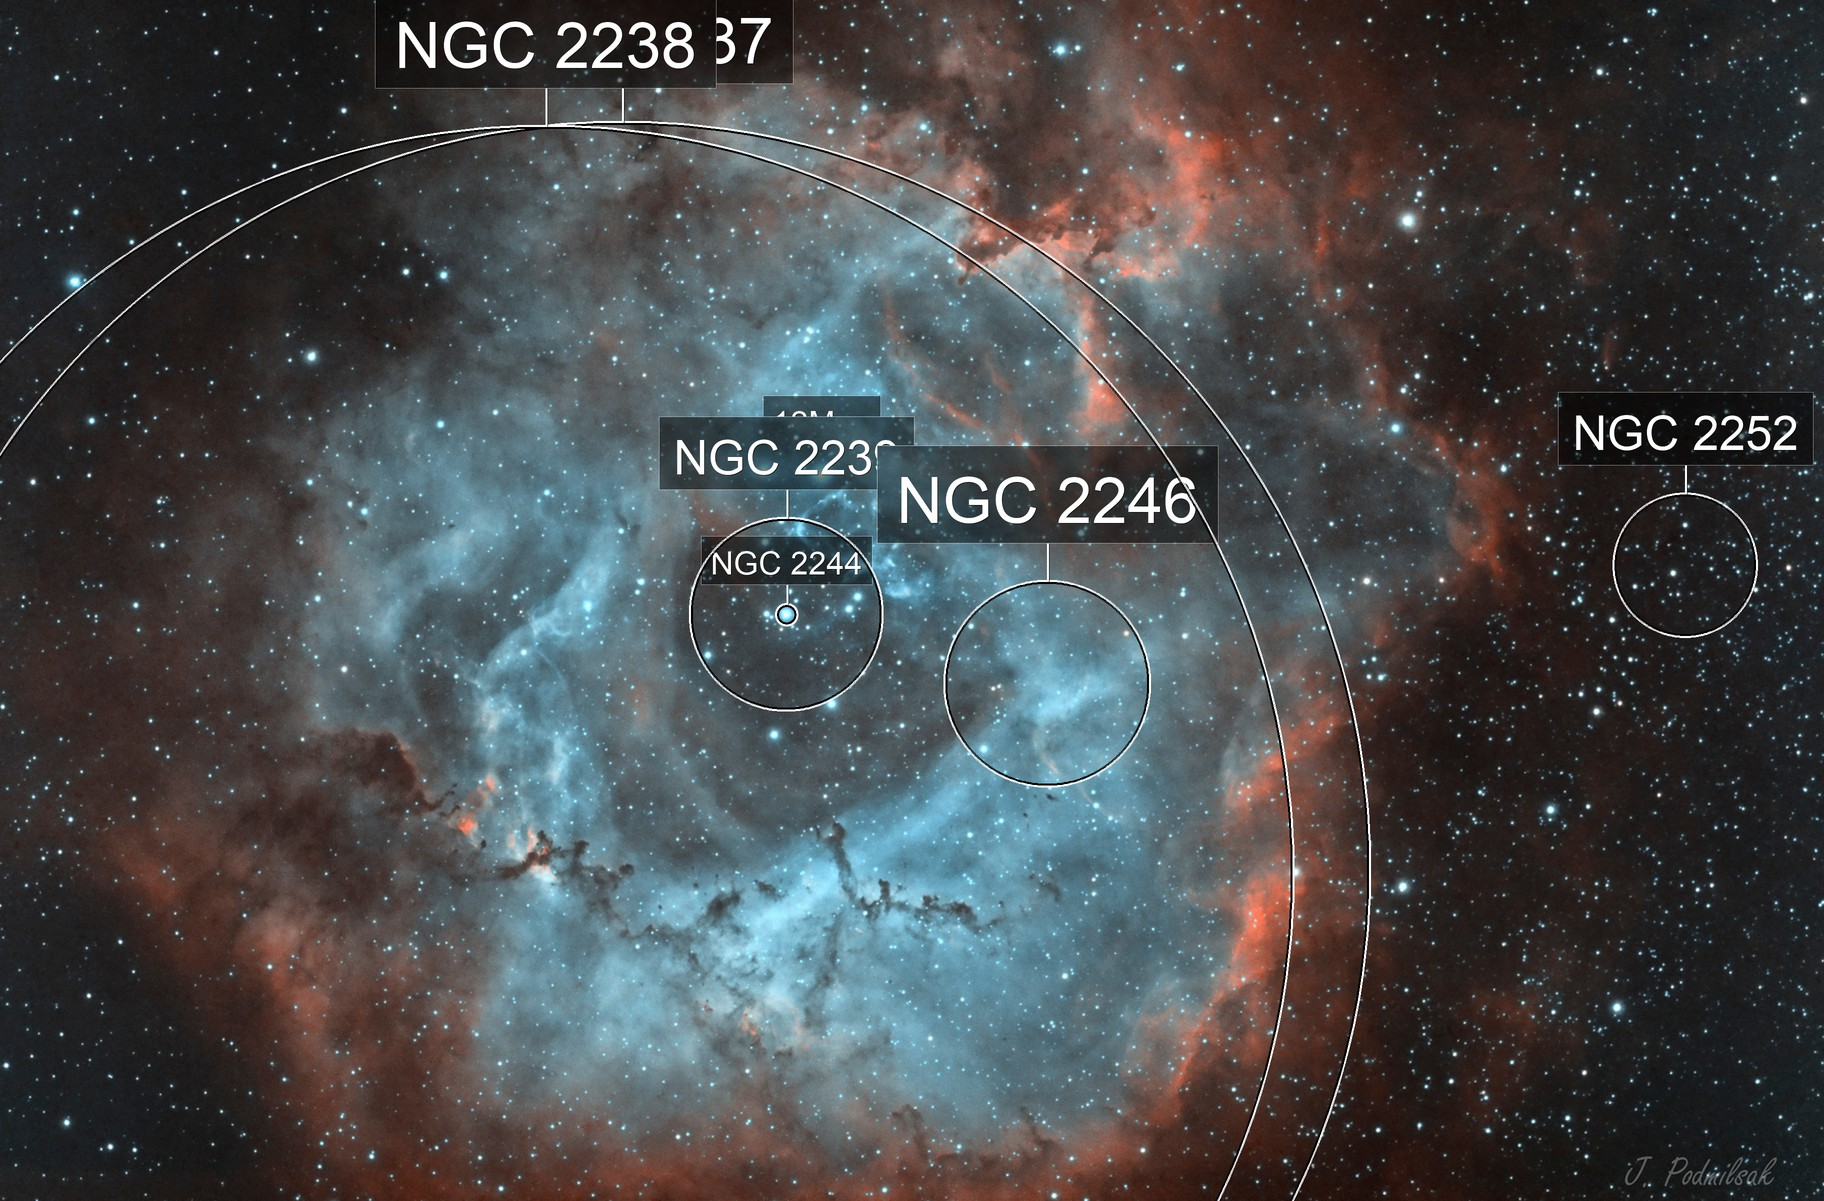 Rosette NGC2239 HOO with color camera